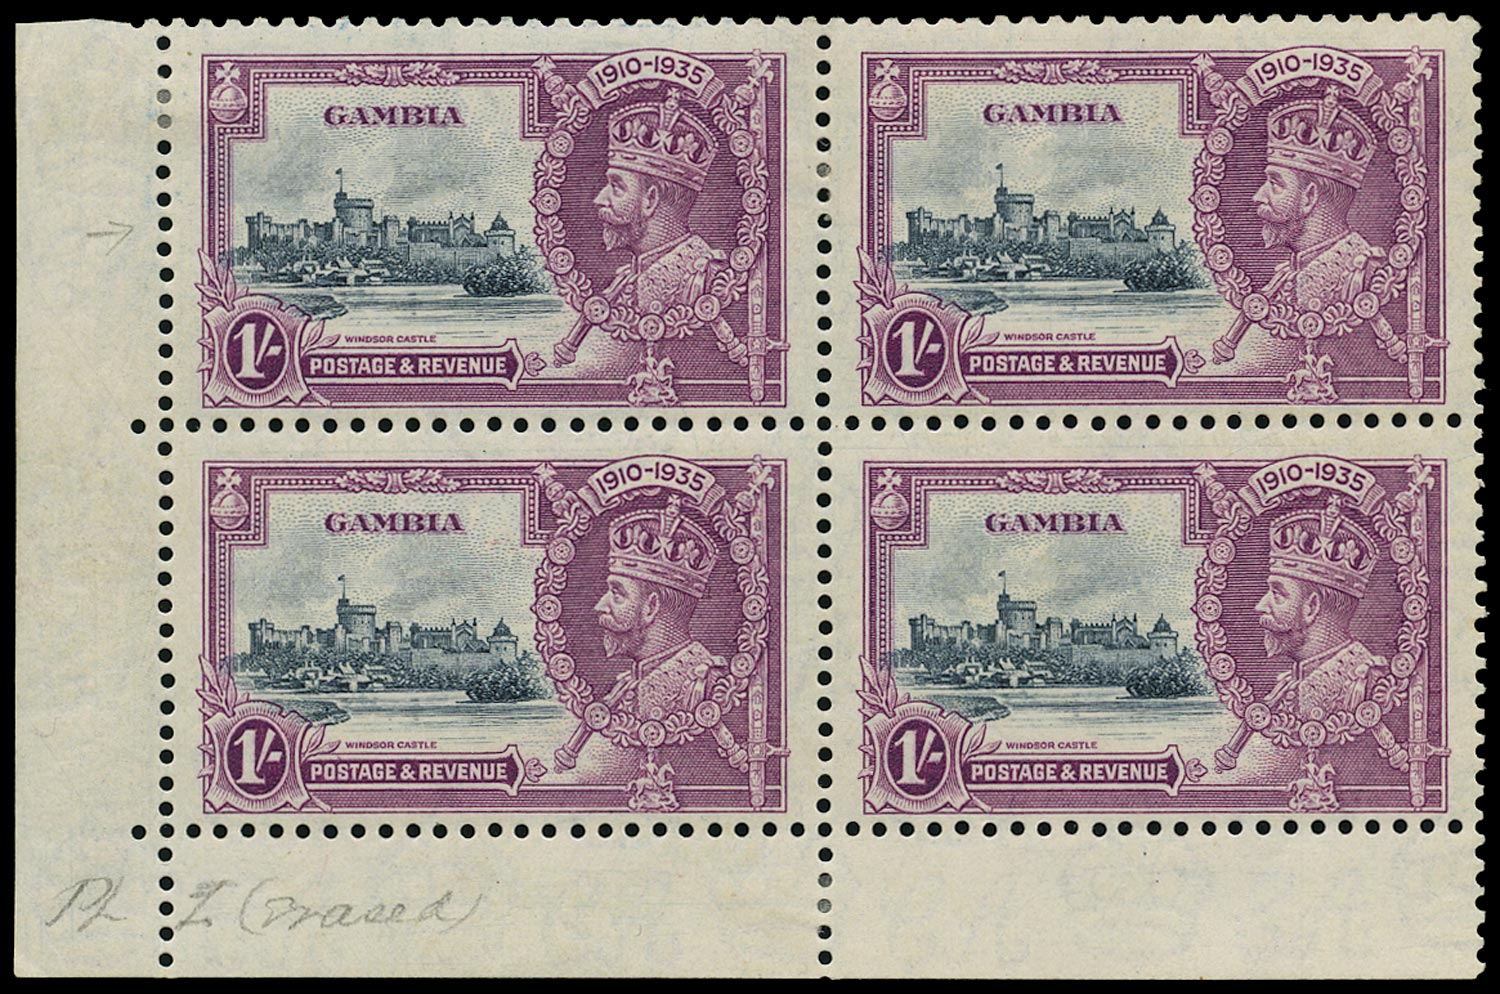 GAMBIA 1935  SG146 var Mint Silver Jubilee 1s variety Extra flagstaff partially erased